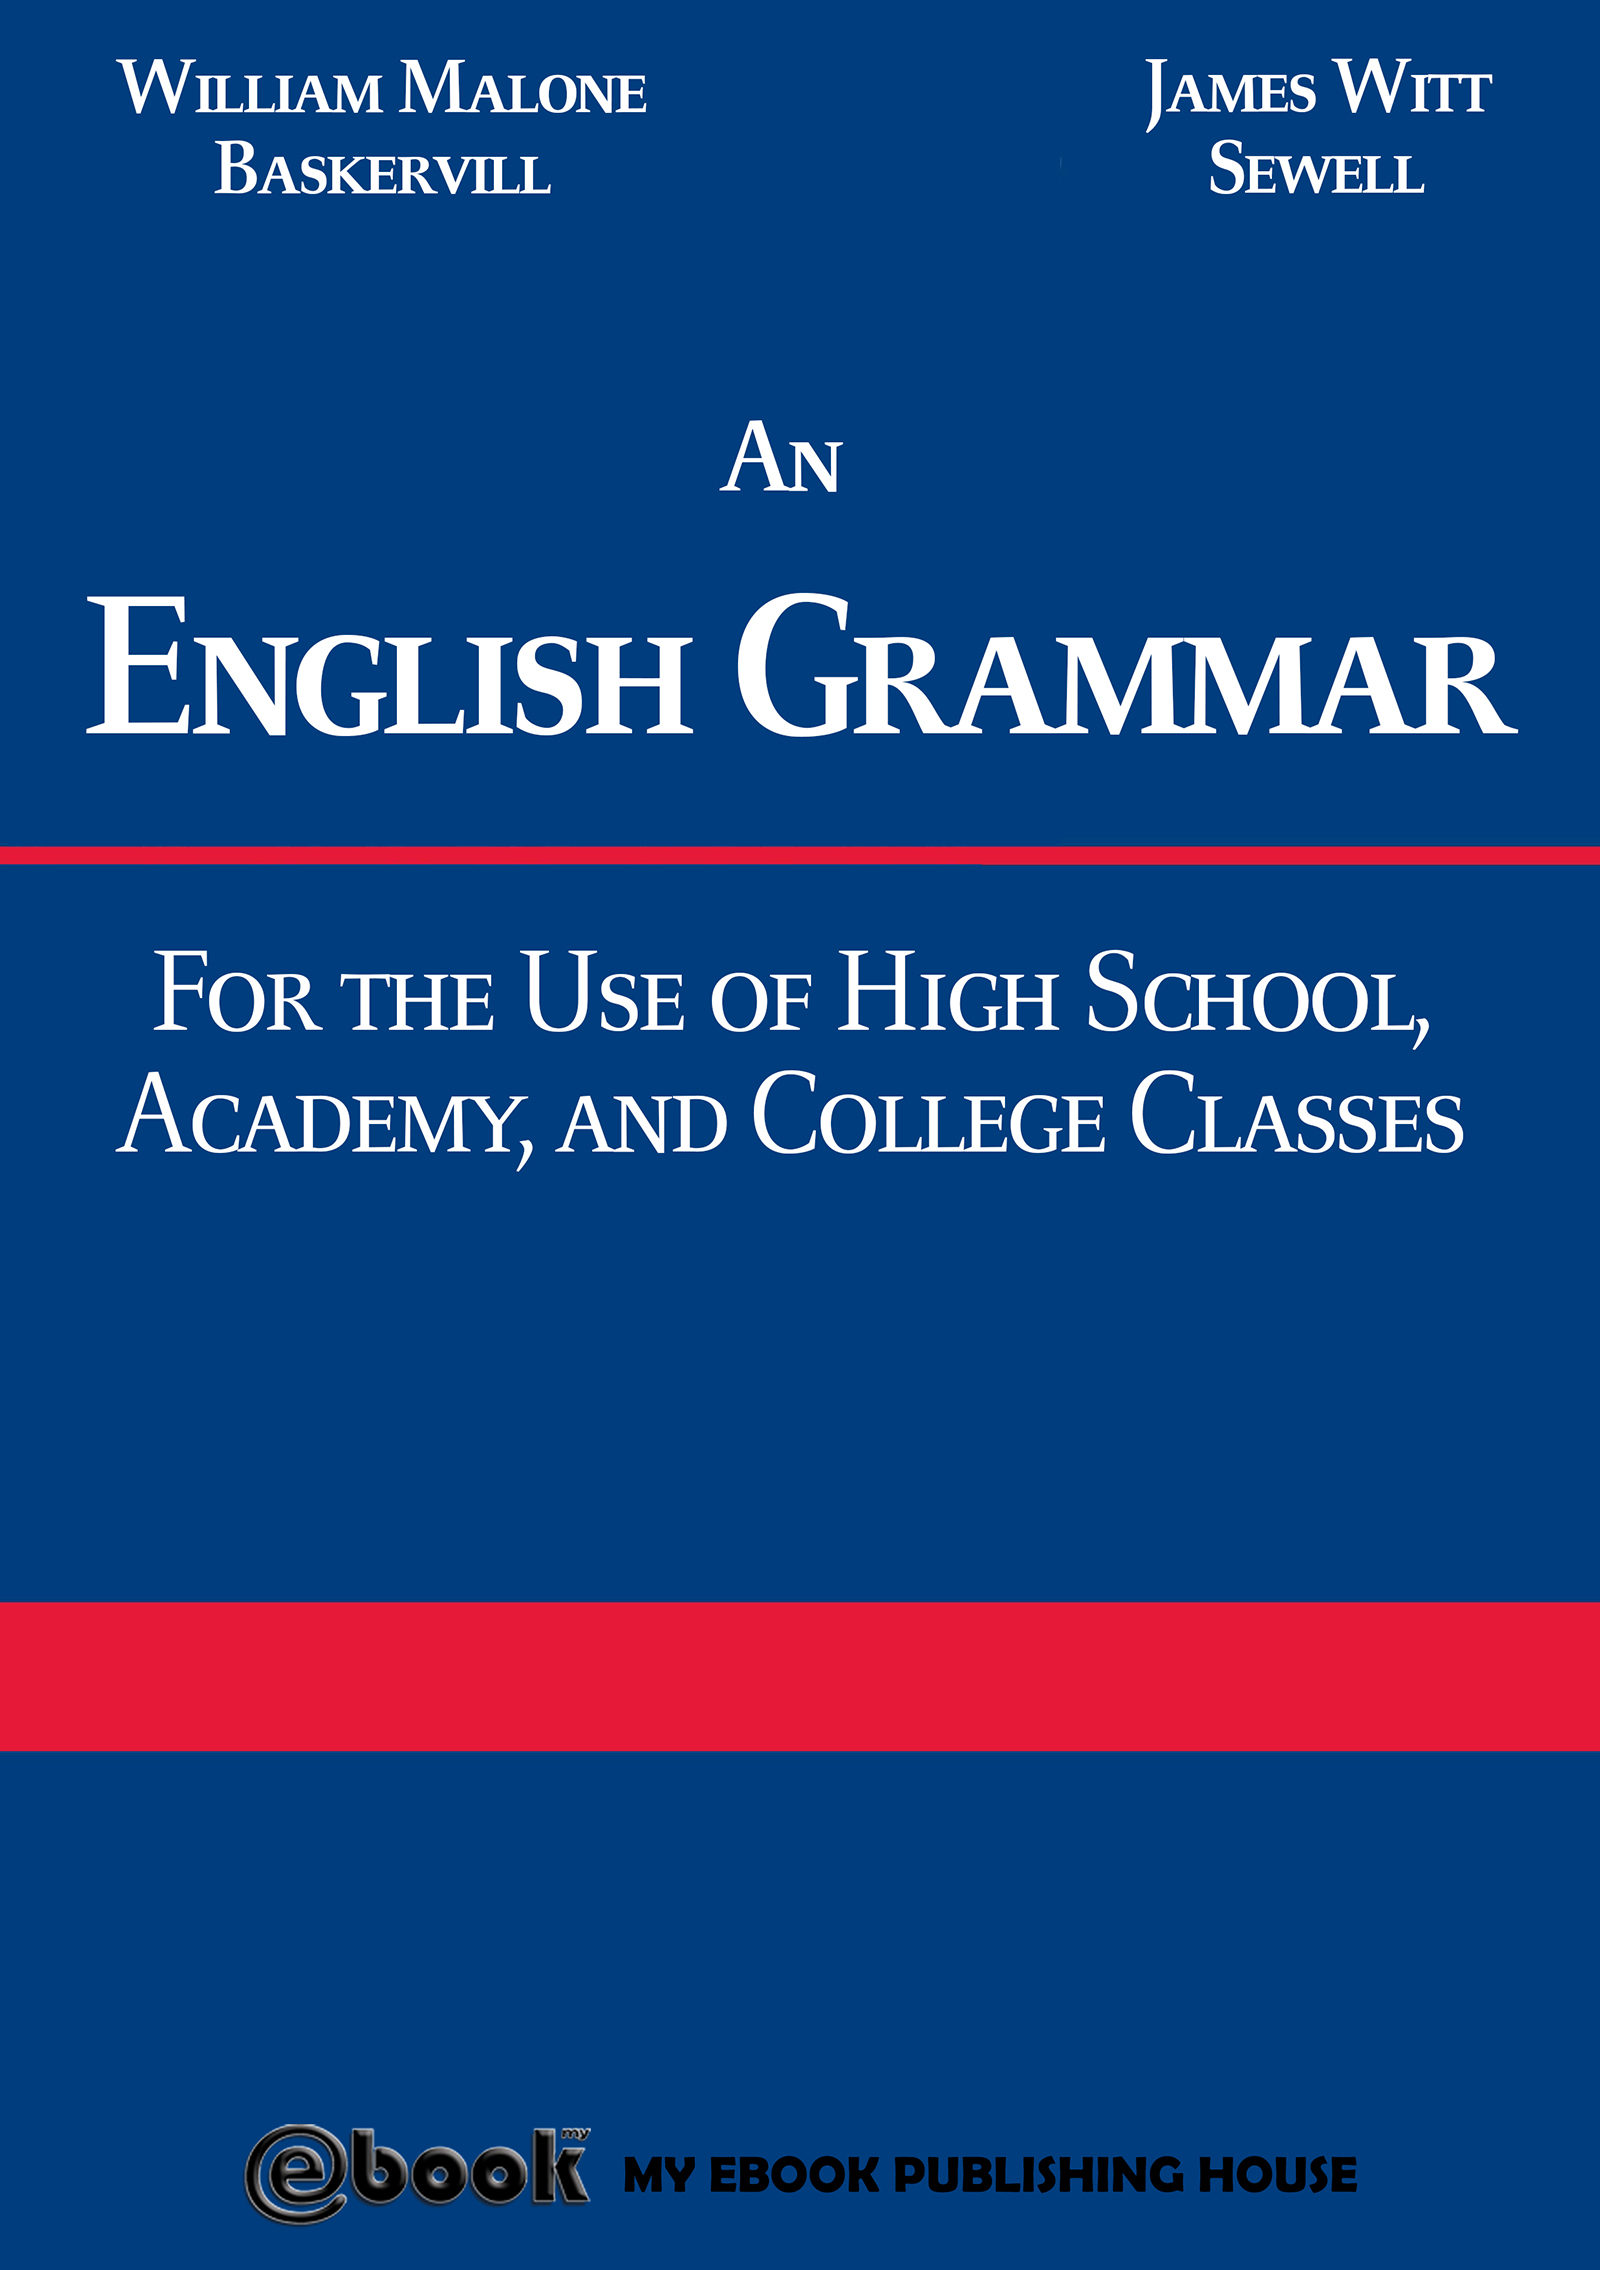 Descargar Libro English Grammar In Use An English Grammar For The Use Of High School Academy And